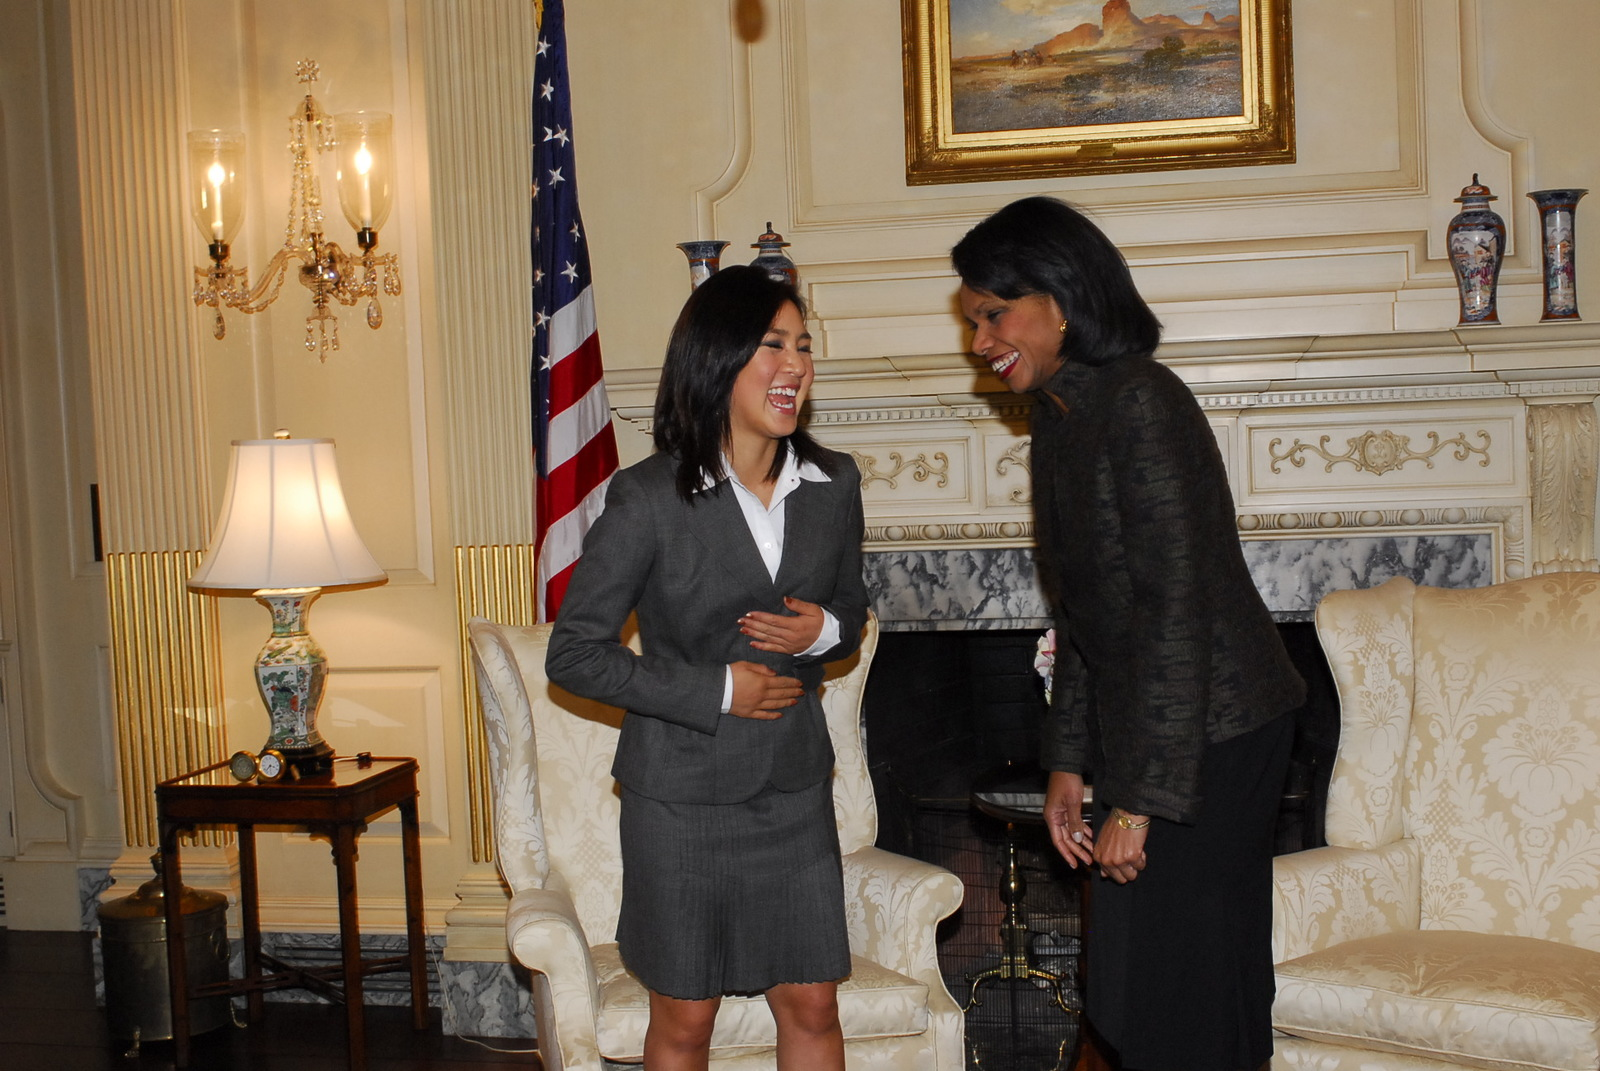 [Assignment: 59-CF-DS-32800-06] Visit of figure-skating star Michelle Kwan to State, where she joined Secretary Condoleezza Rice and Under Secretary for Public Diplomacy and Public Affairs Karen Hughes in the Treaty Room for the announcement of Kwan's appointment as the first American Public Diplomacy Envoy. [In the role, Kwan, a five-time World Champion and two-time Olympic medalist, will reach out to international young people by visiting their schools and clubs to speak about leadership and to engage them in dialogue on social and educational issues.] [Photographer: Ann Thomas--State] [59-CF-DS-32800-06_DSC0260.JPG]